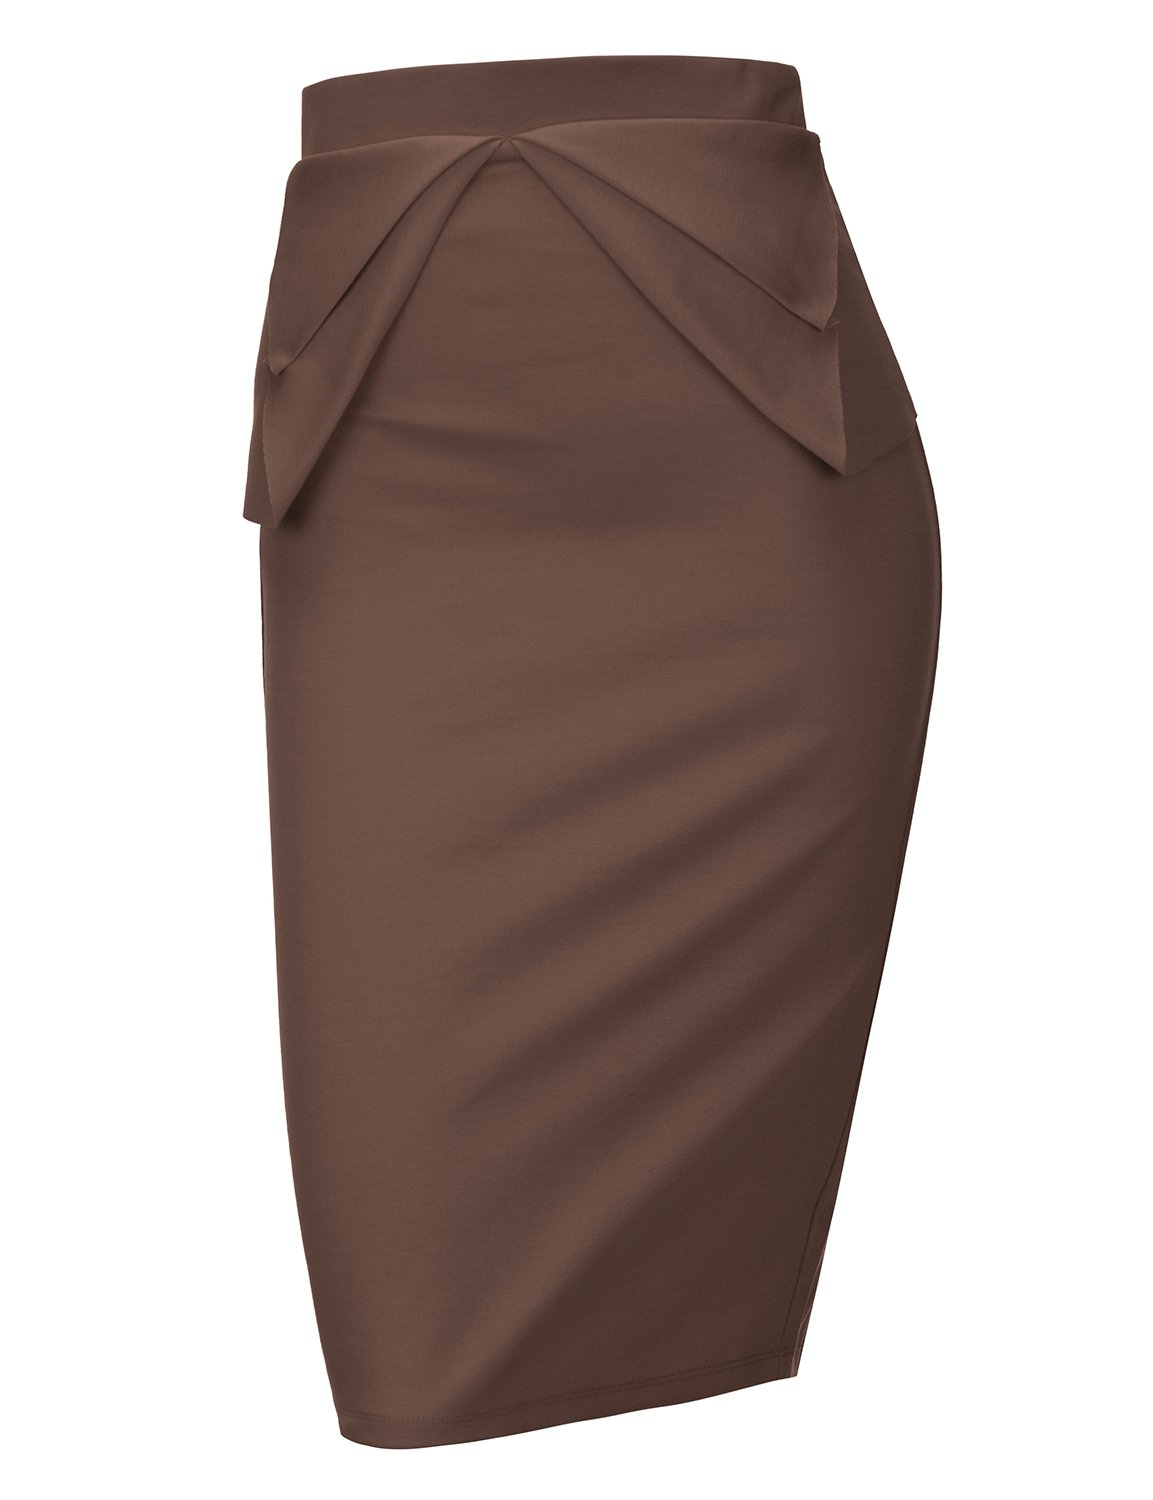 Regna X Womens high Waist Elastic Band Sexy Knee Length Skirts Brown XL by Regna X (Image #2)